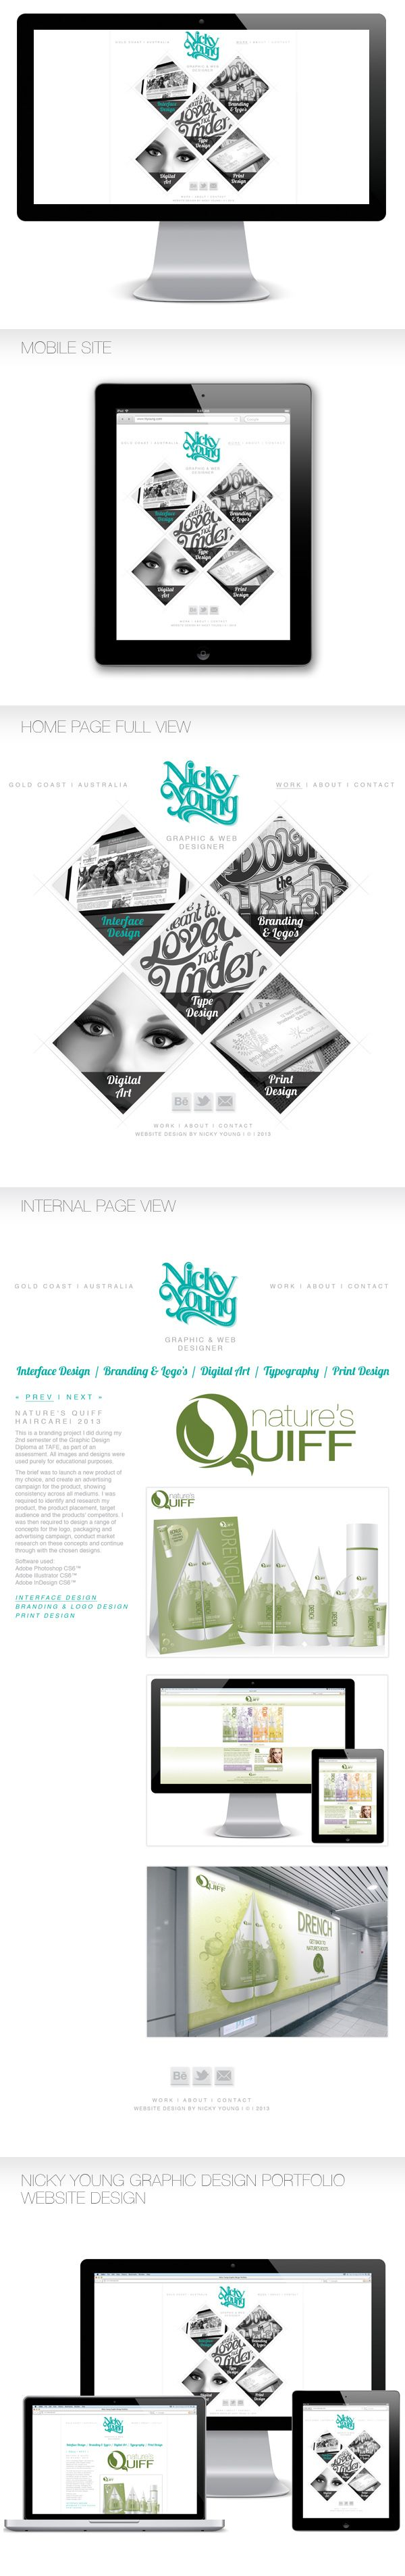 Personal Portfolio Website by Nicky Young, via Behance